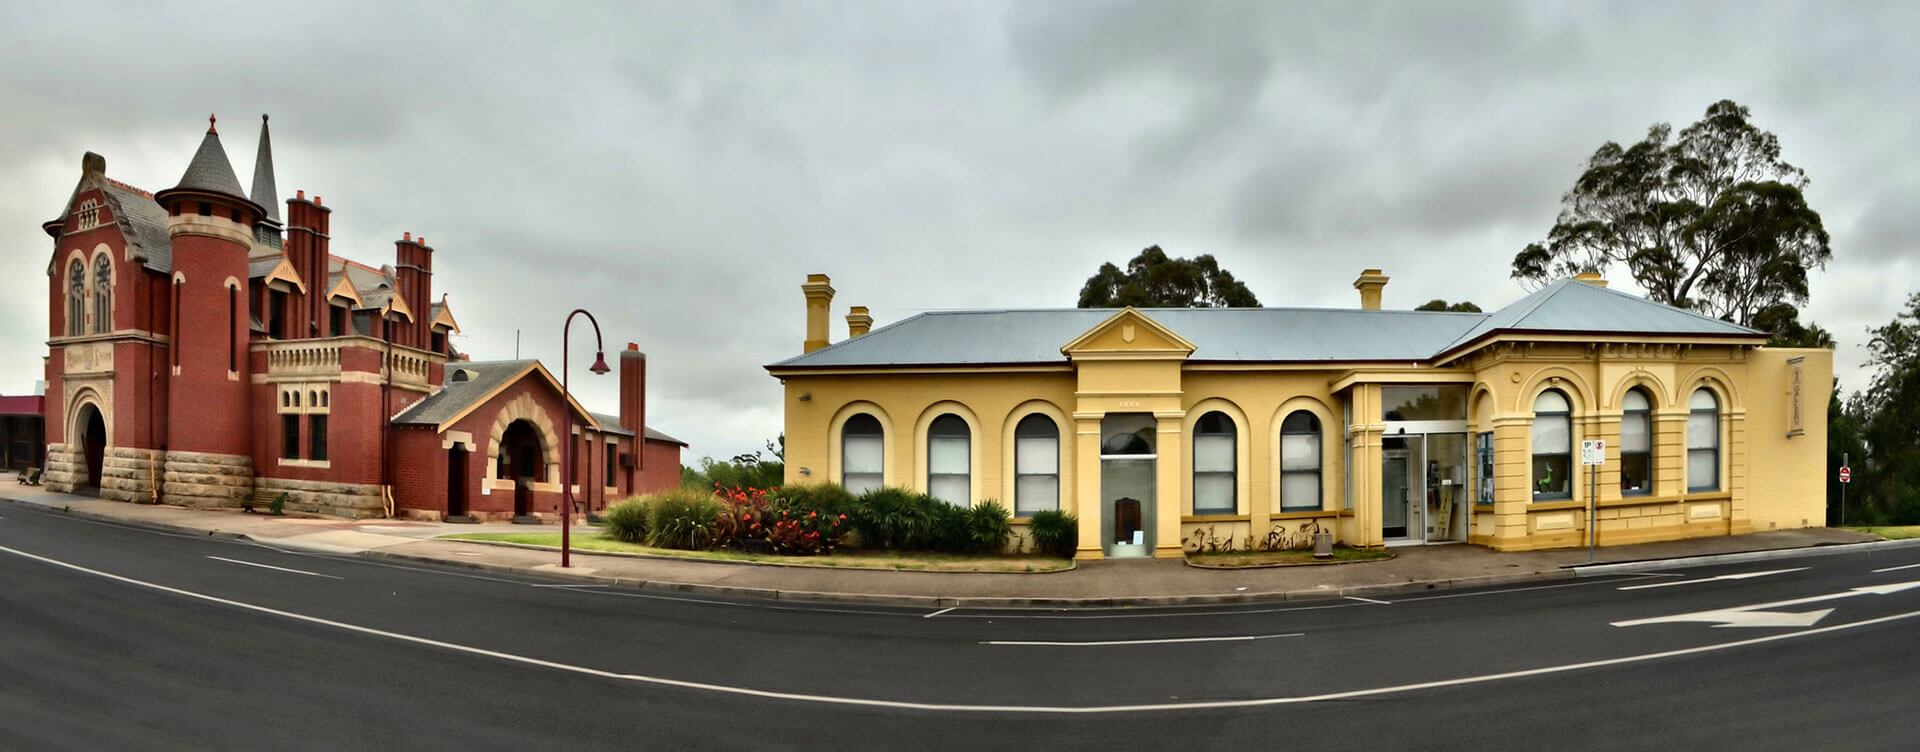 Bairnsdale Courthouse - Colonial Motor Inn Bairnsdale